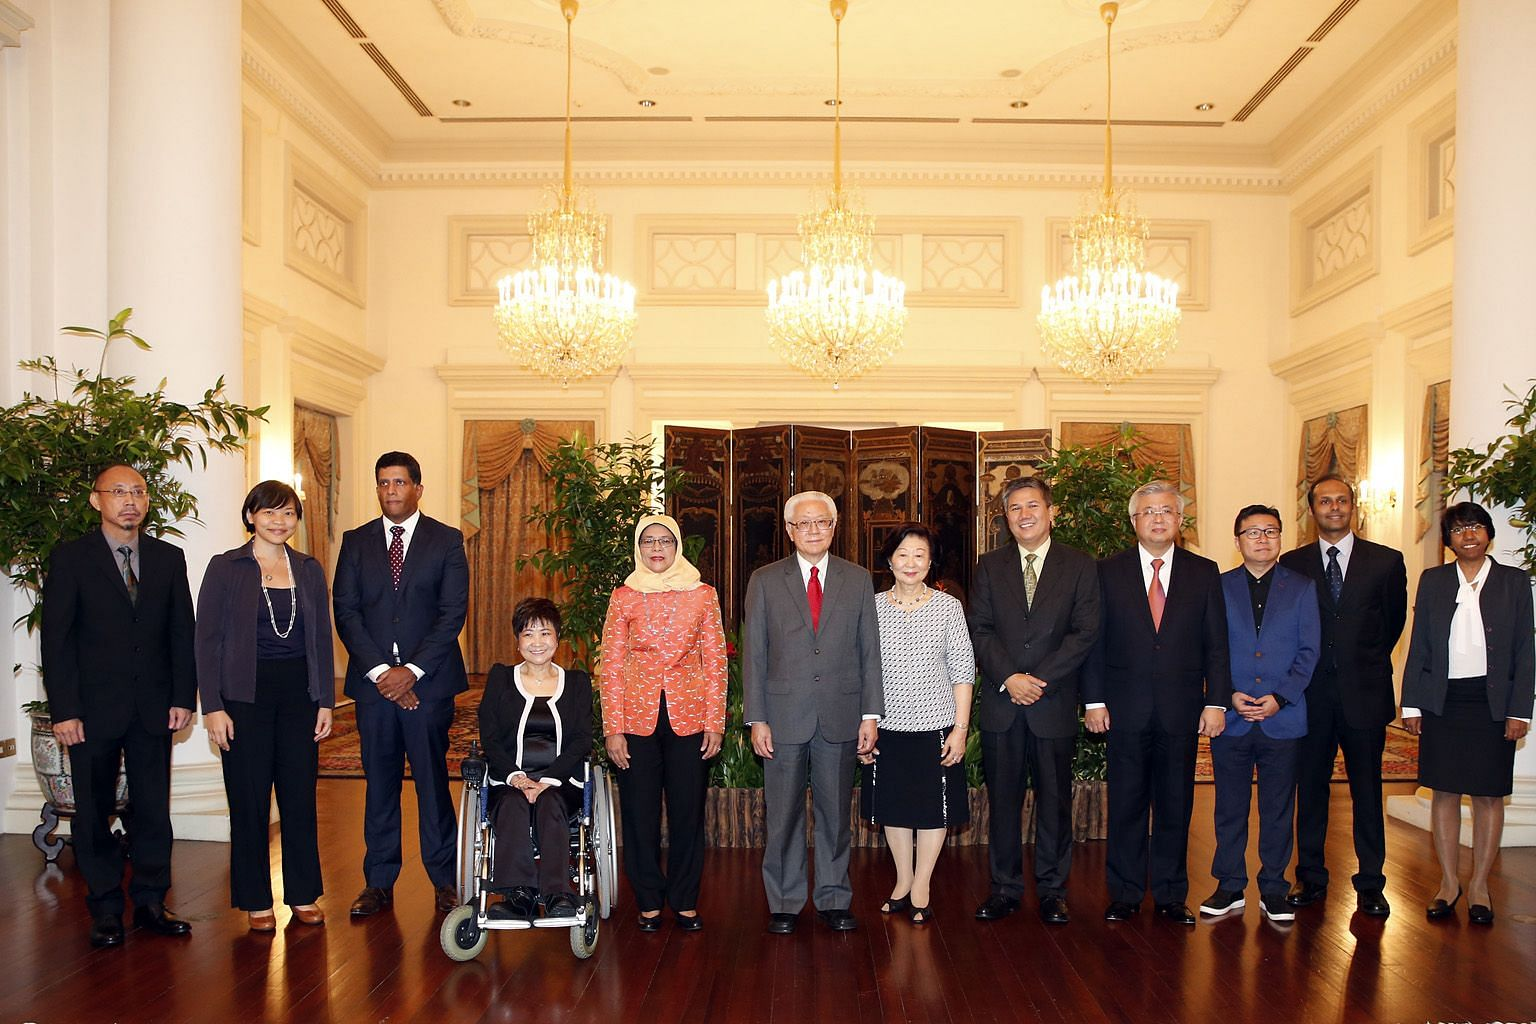 Then Speaker Halimah Yacob, then President Tony Tan Keng Yam, and his wife, Mary, being flanked by the current lineup of Nominated MPs after their appointment on March 22, 2016. (From left) Labour economist Randolph Tan; social entrepreneur Kuik Shia